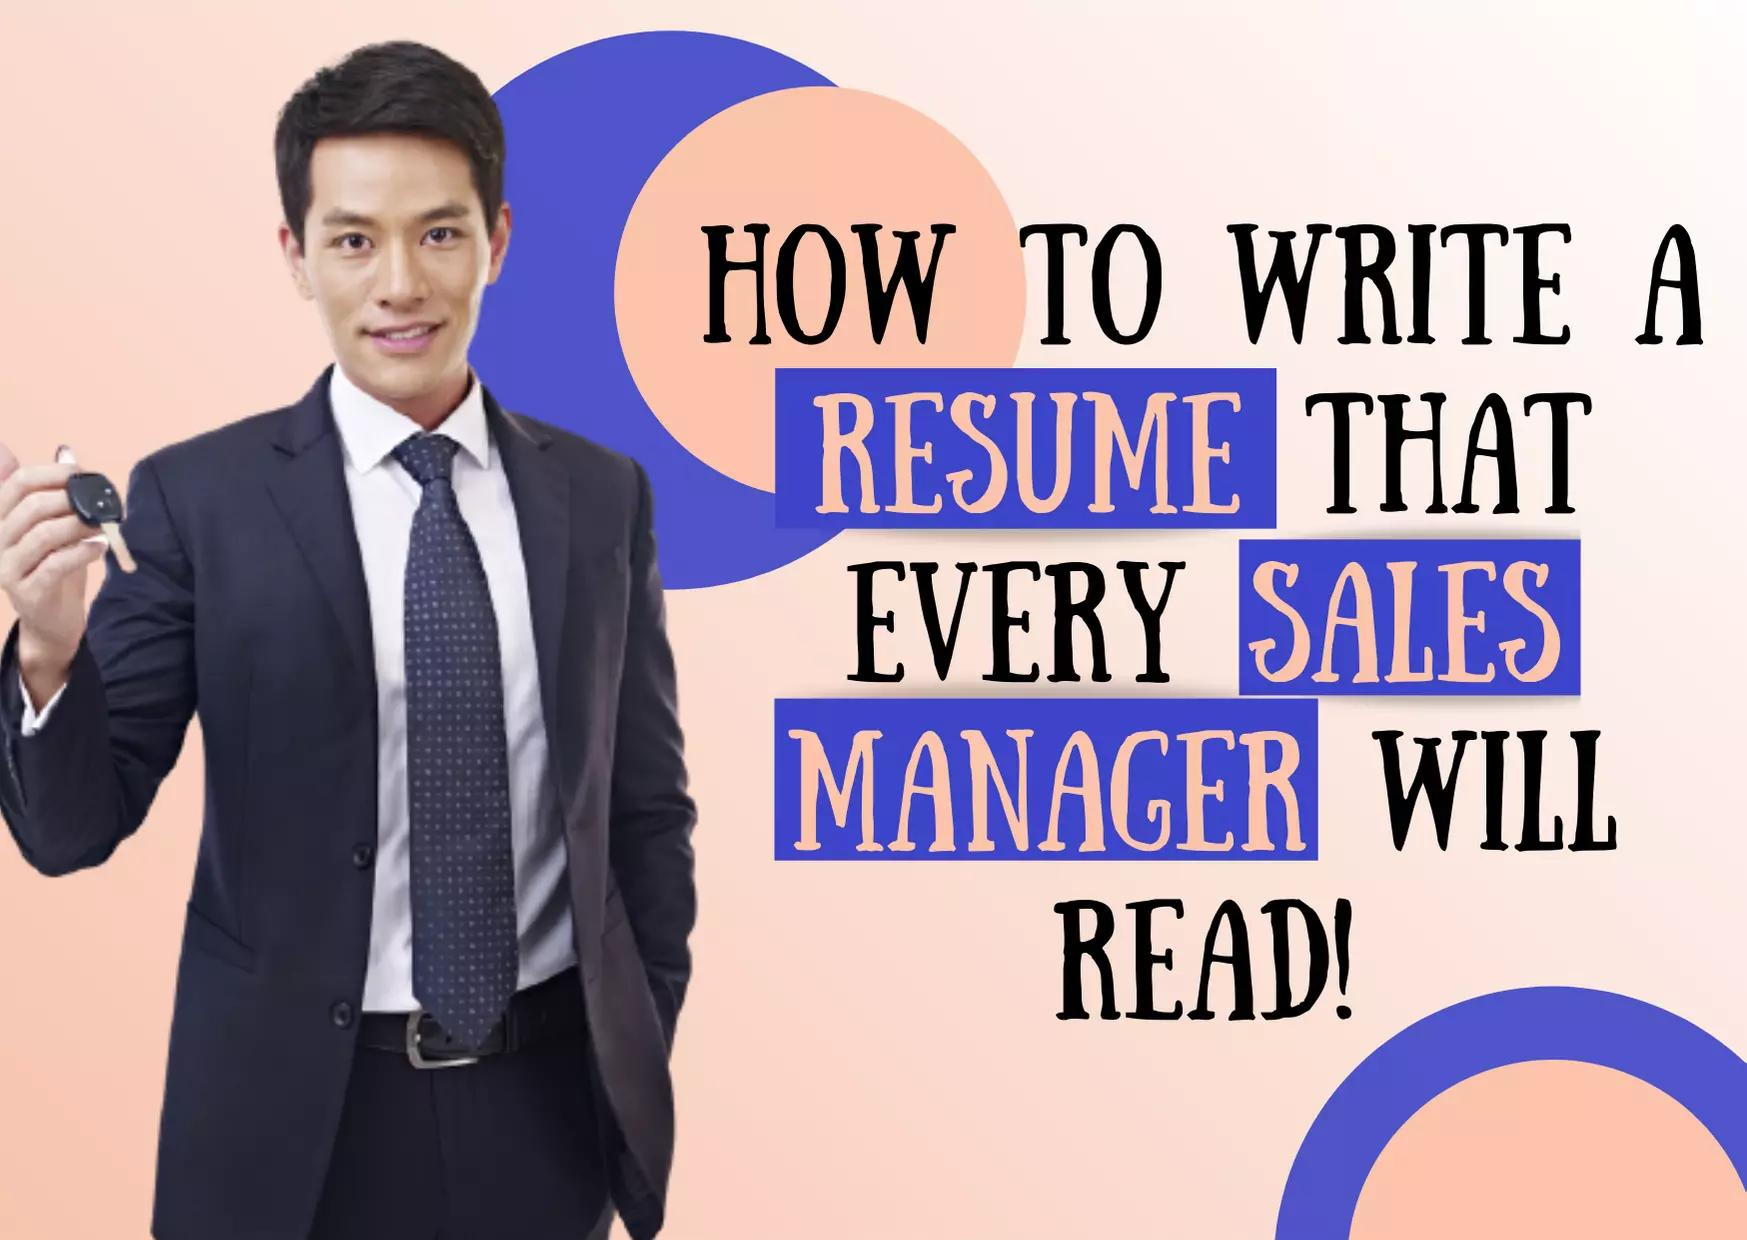 How to write a resume that every sales manager will read.